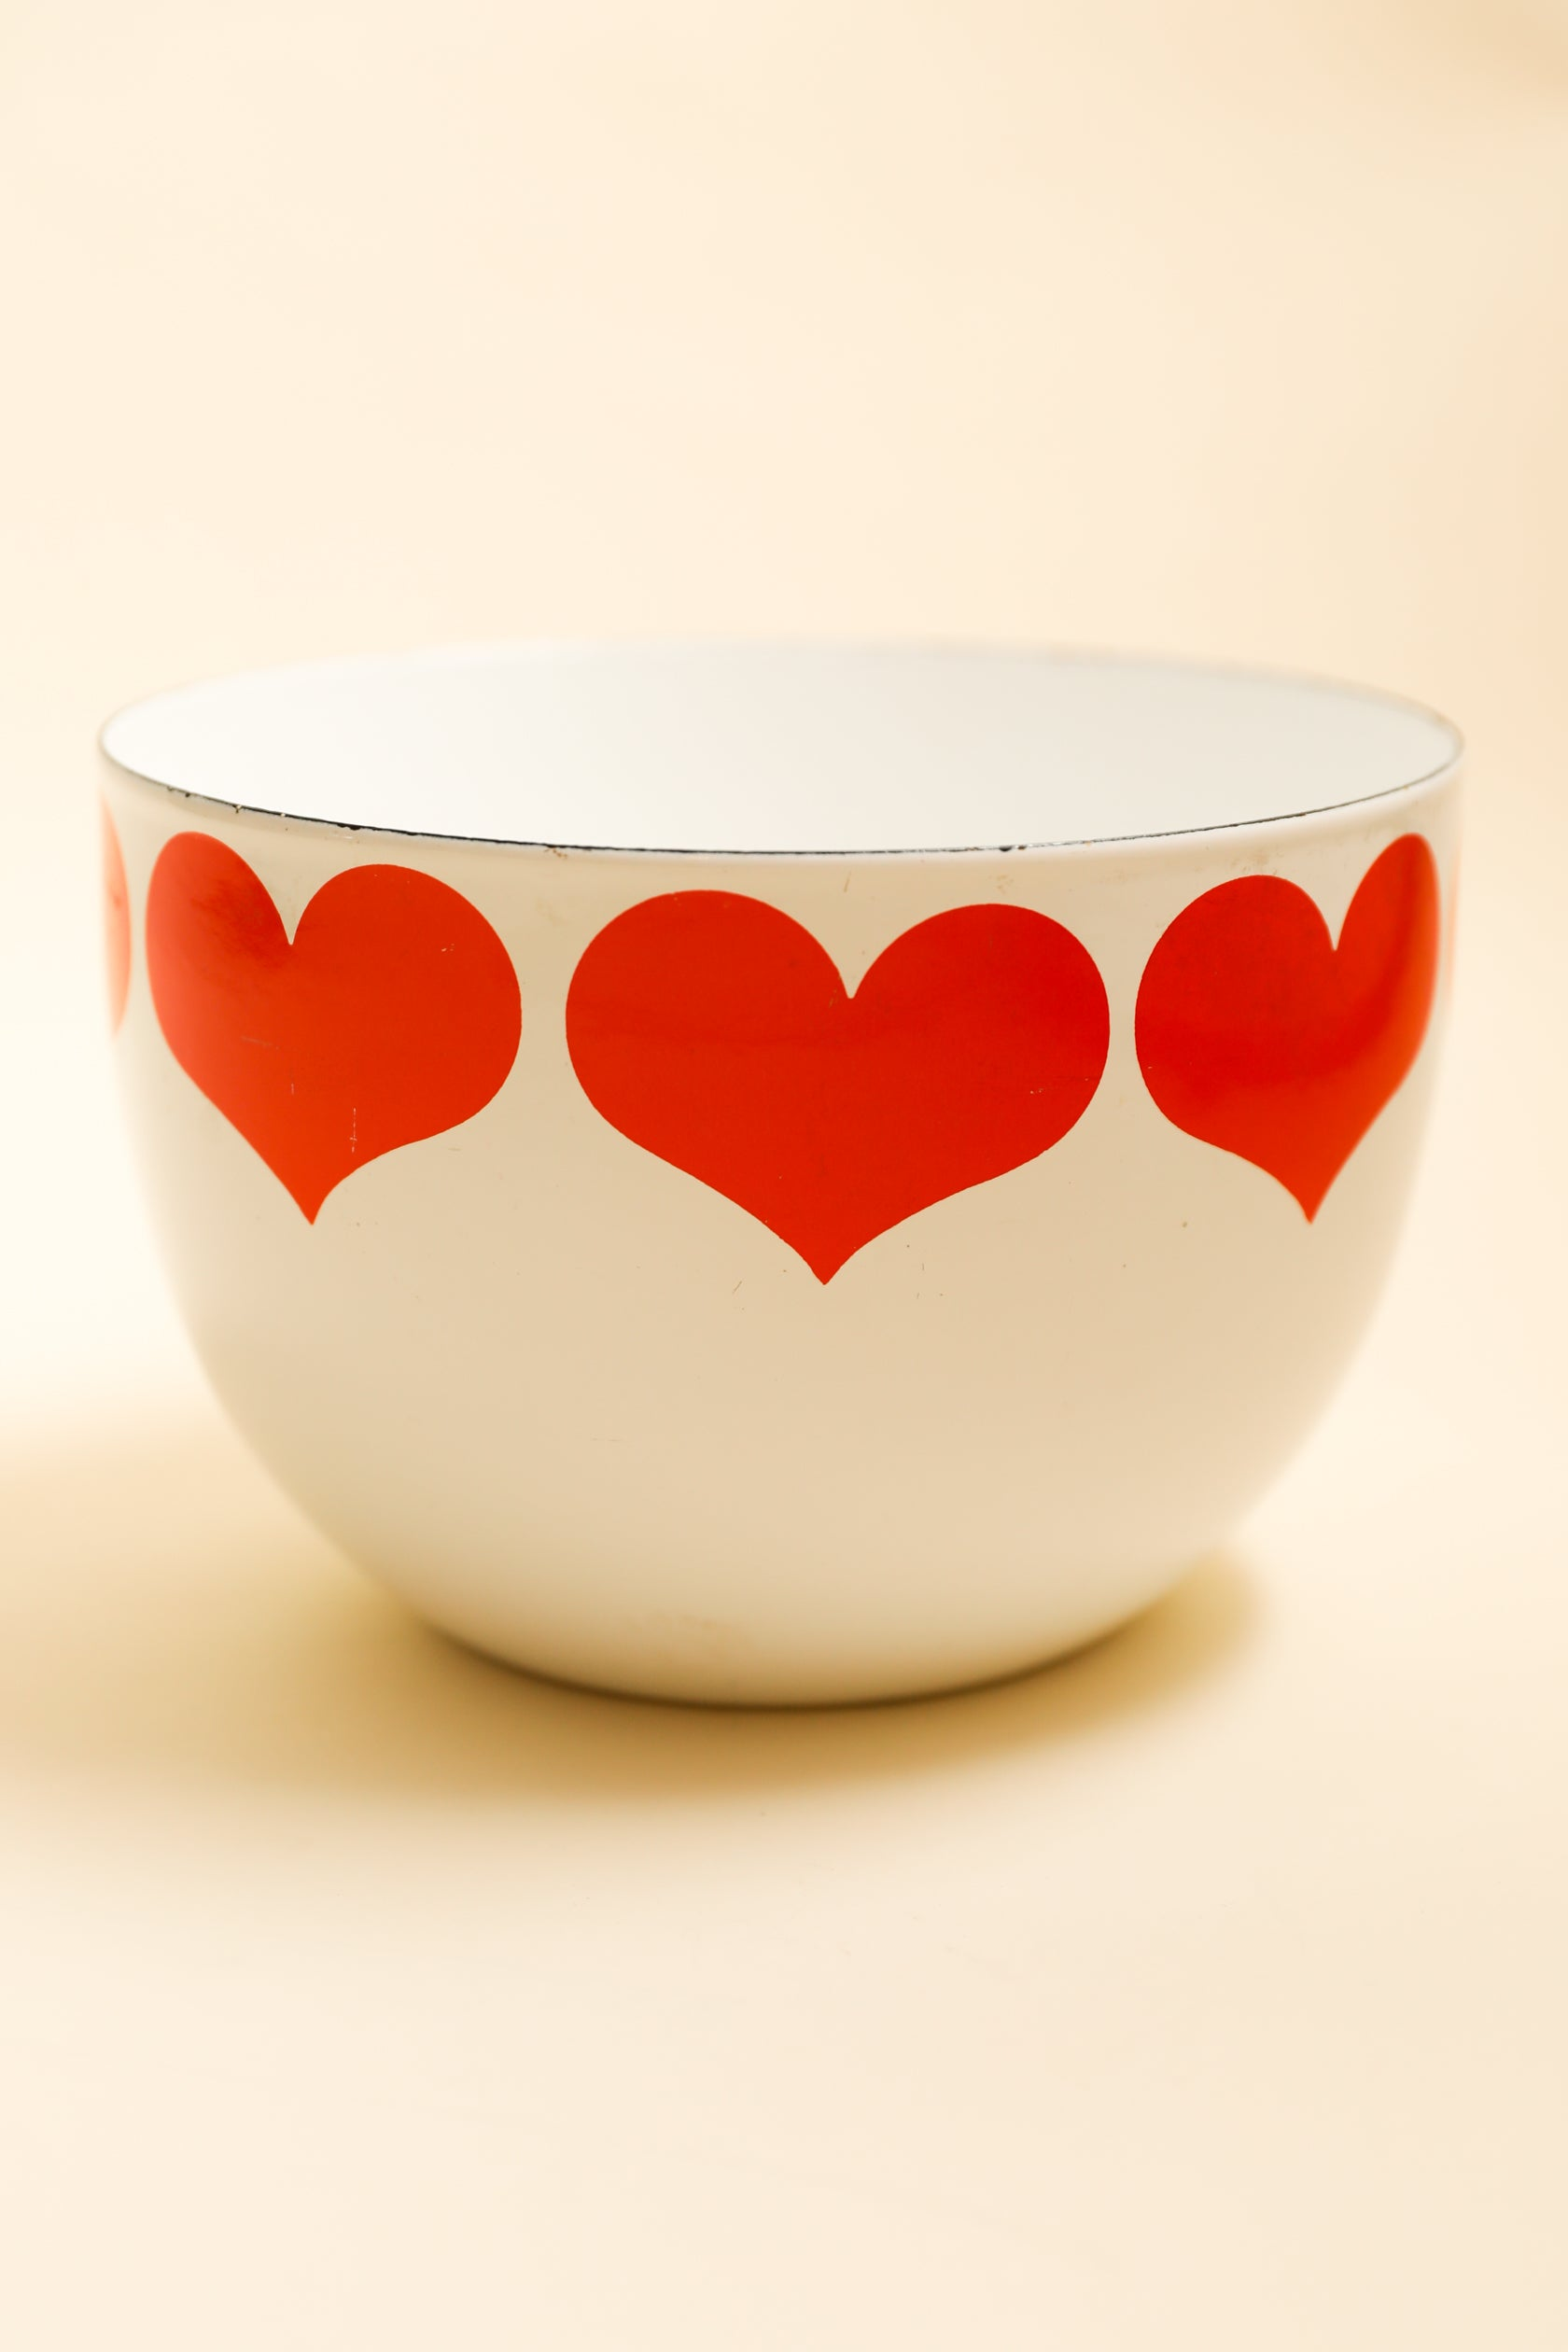 Vintage Finel Finland Enamel Heart Bowl by Kaj Franck, large